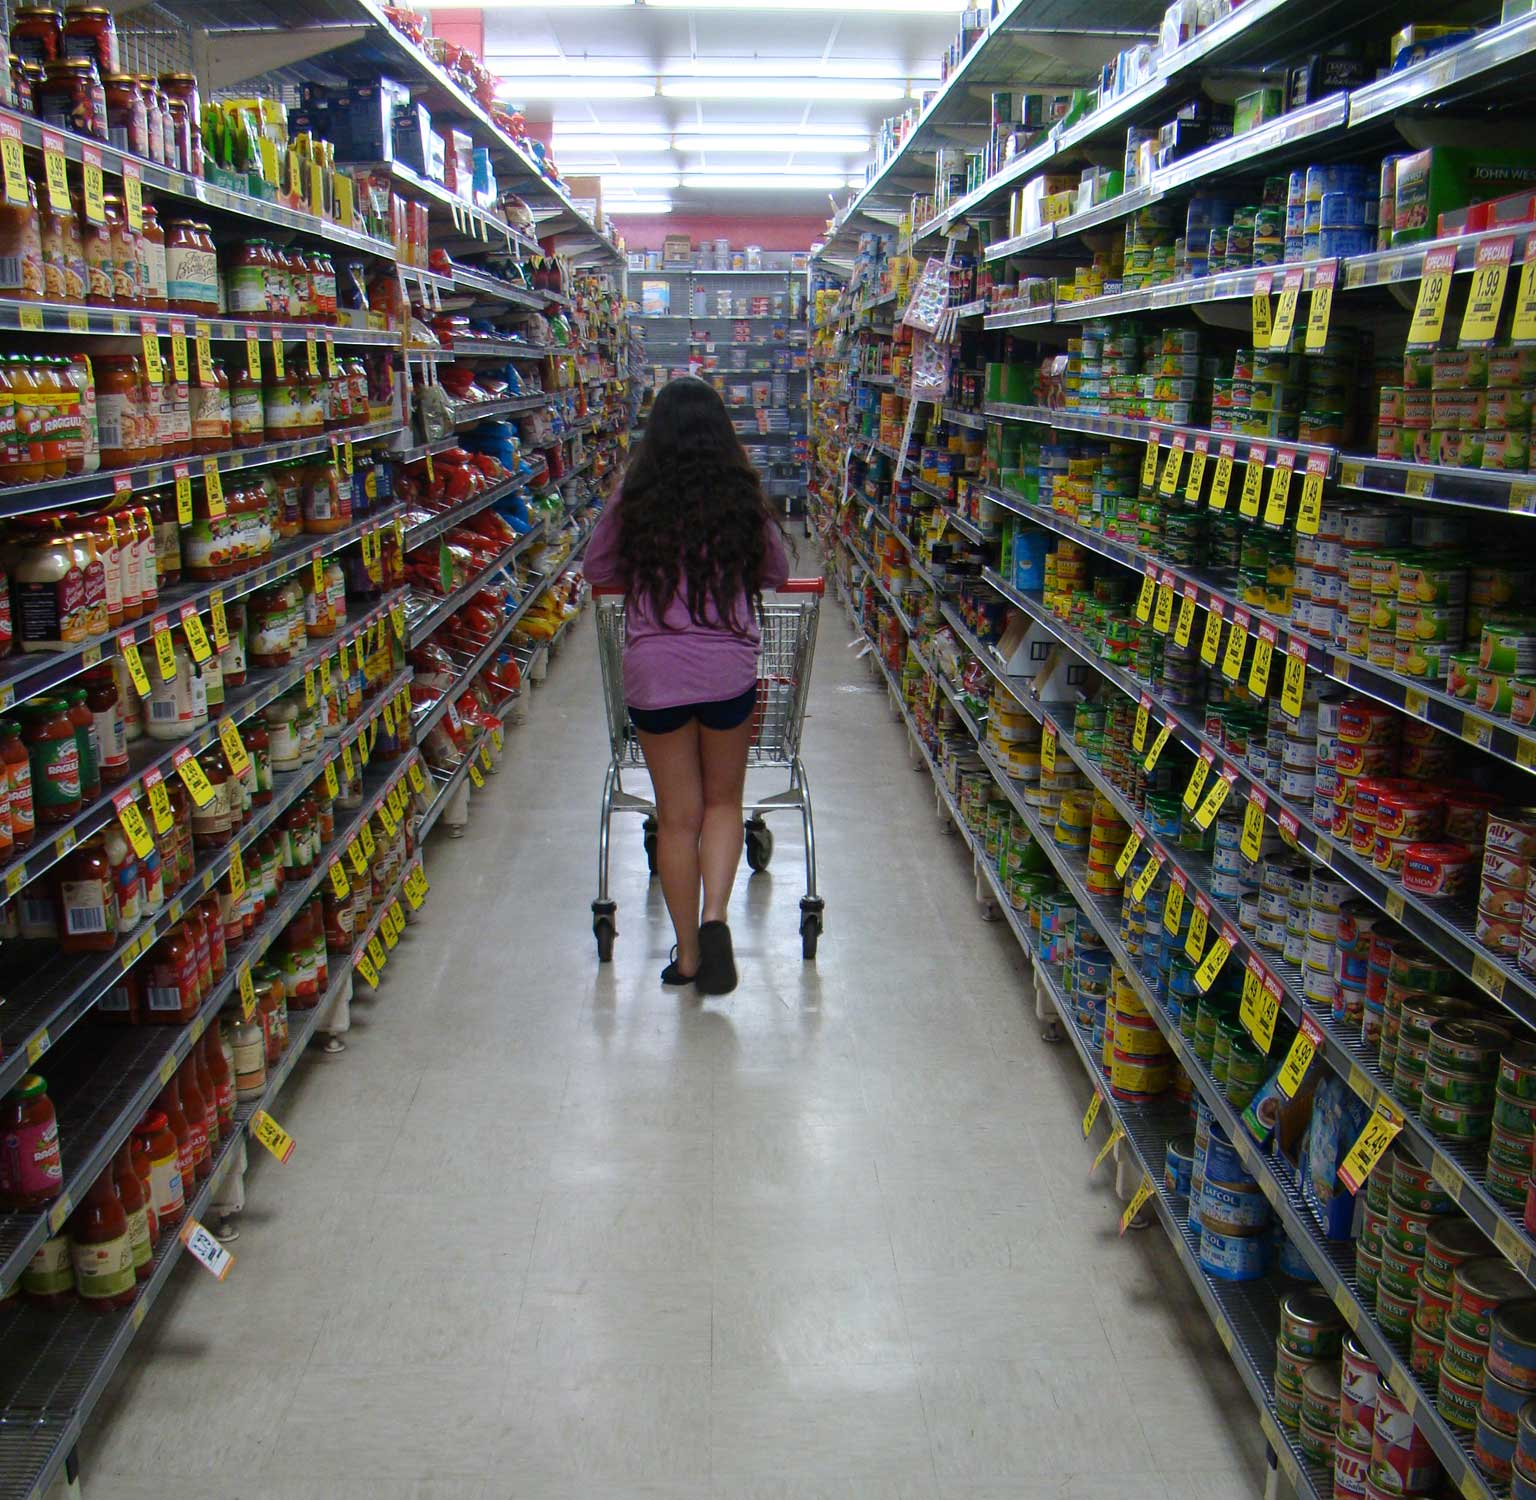 Tookii things to do with kids food shopping one of the activities for kids